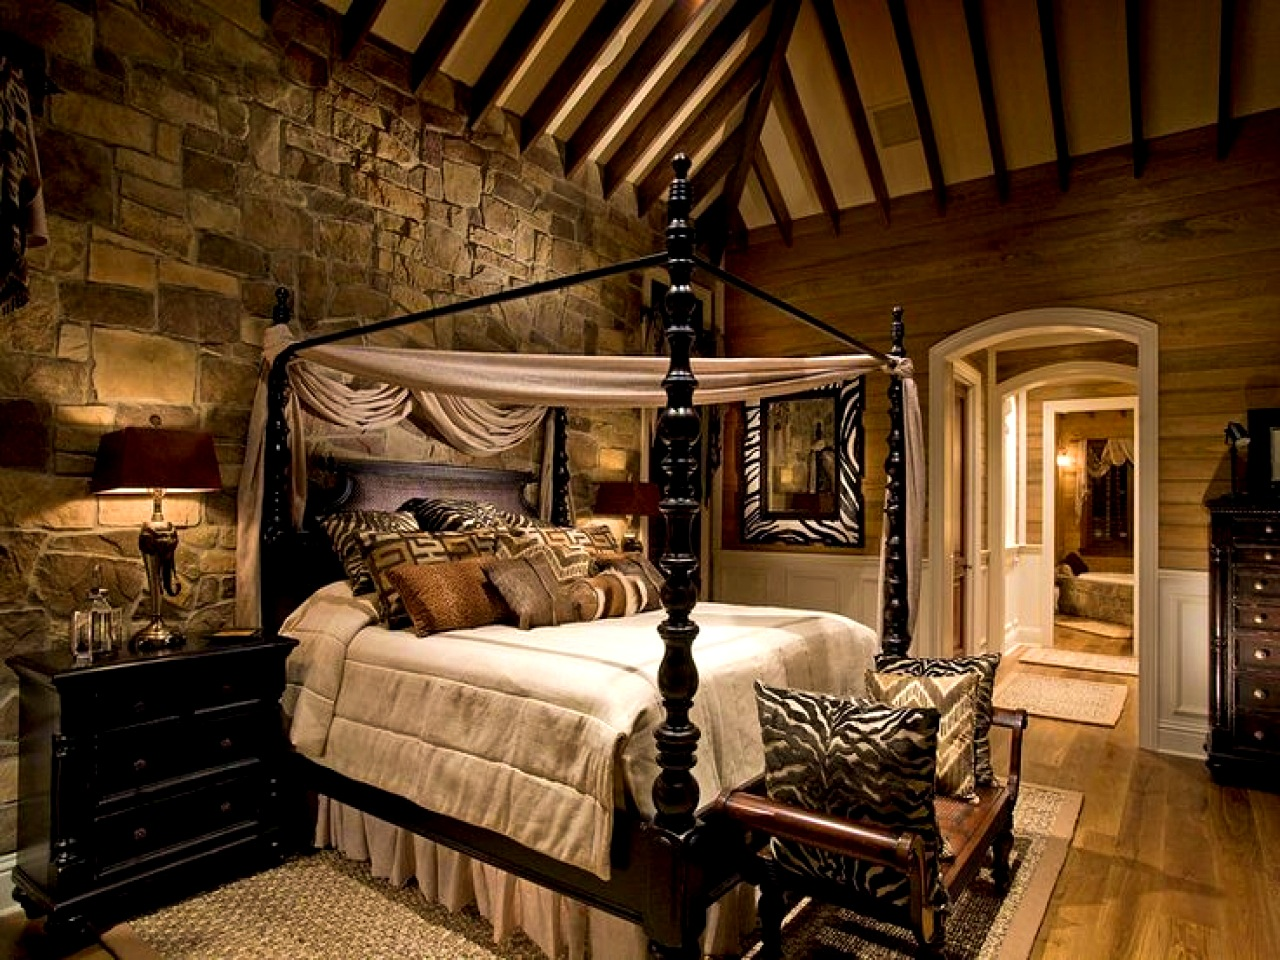 Rustic bedroom decorating ideas a guide to inspire and for Bed decoration